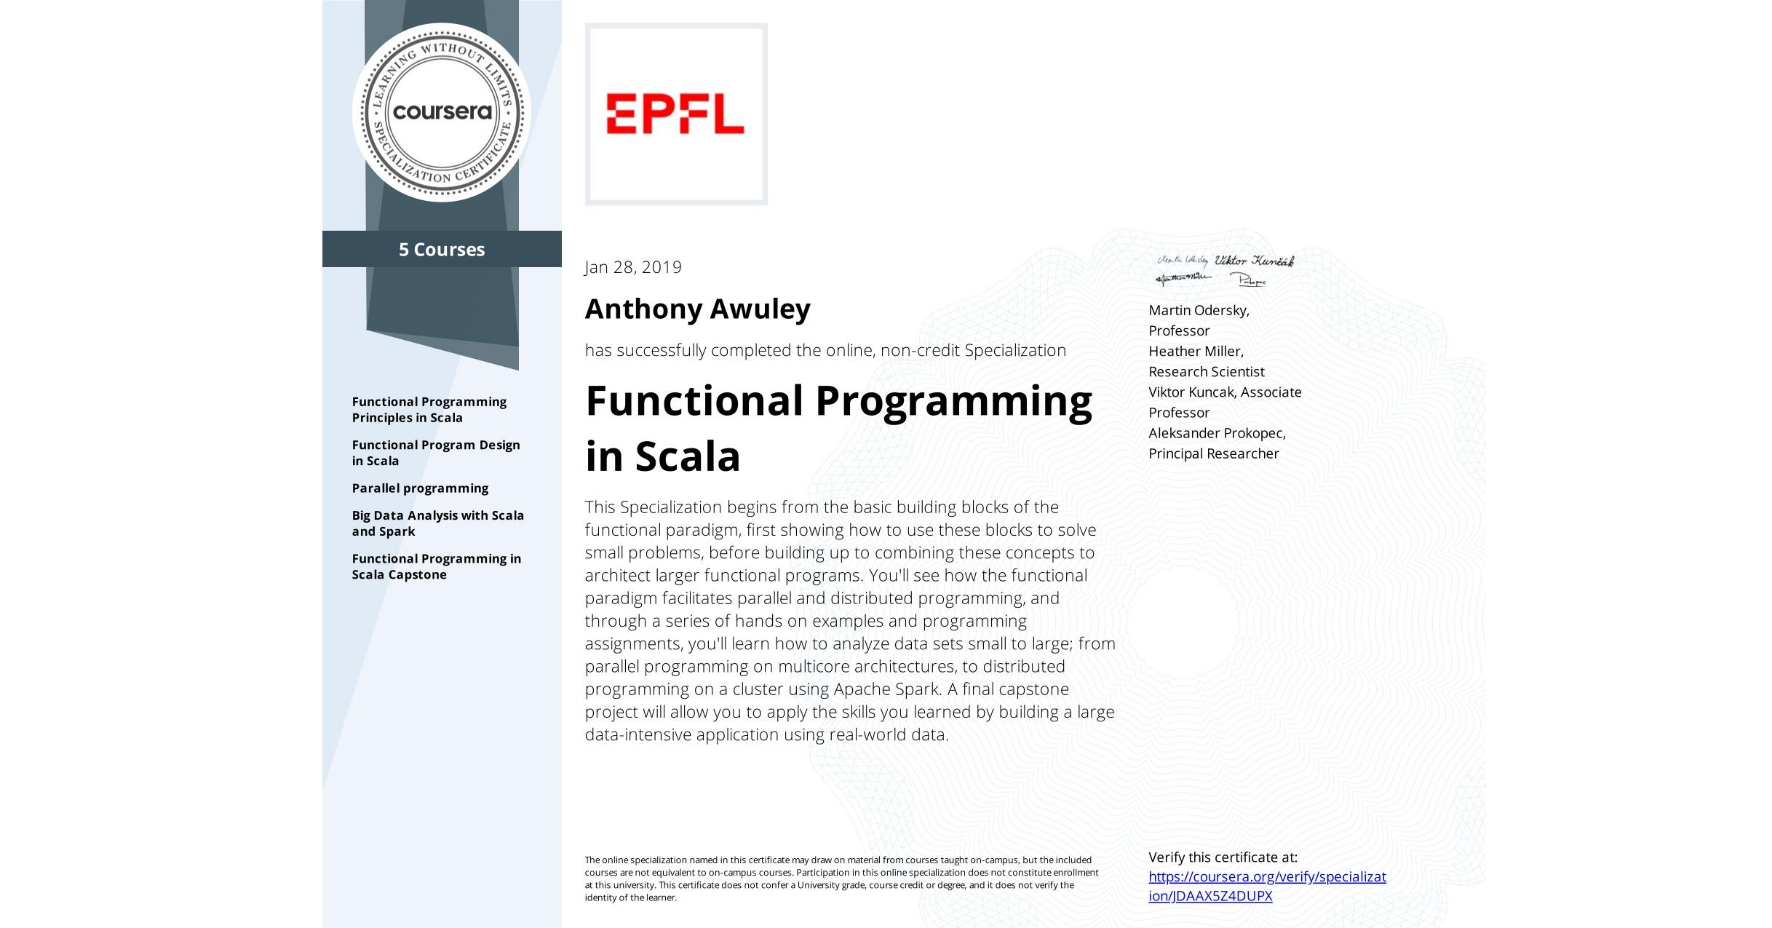 View certificate for Anthony Awuley, Functional Programming in Scala, offered through Coursera. This Specialization begins from the basic building blocks of the functional paradigm, first showing how to use these blocks to solve small problems, before building up to combining these concepts to architect larger functional programs. You'll see how the functional paradigm facilitates parallel and distributed programming, and through a series of hands on examples and programming assignments, you'll learn how to analyze data sets small to large; from parallel programming on multicore architectures, to distributed programming on a cluster using Apache Spark. A final capstone project will allow you to apply the skills you learned by building a large data-intensive application using real-world data.